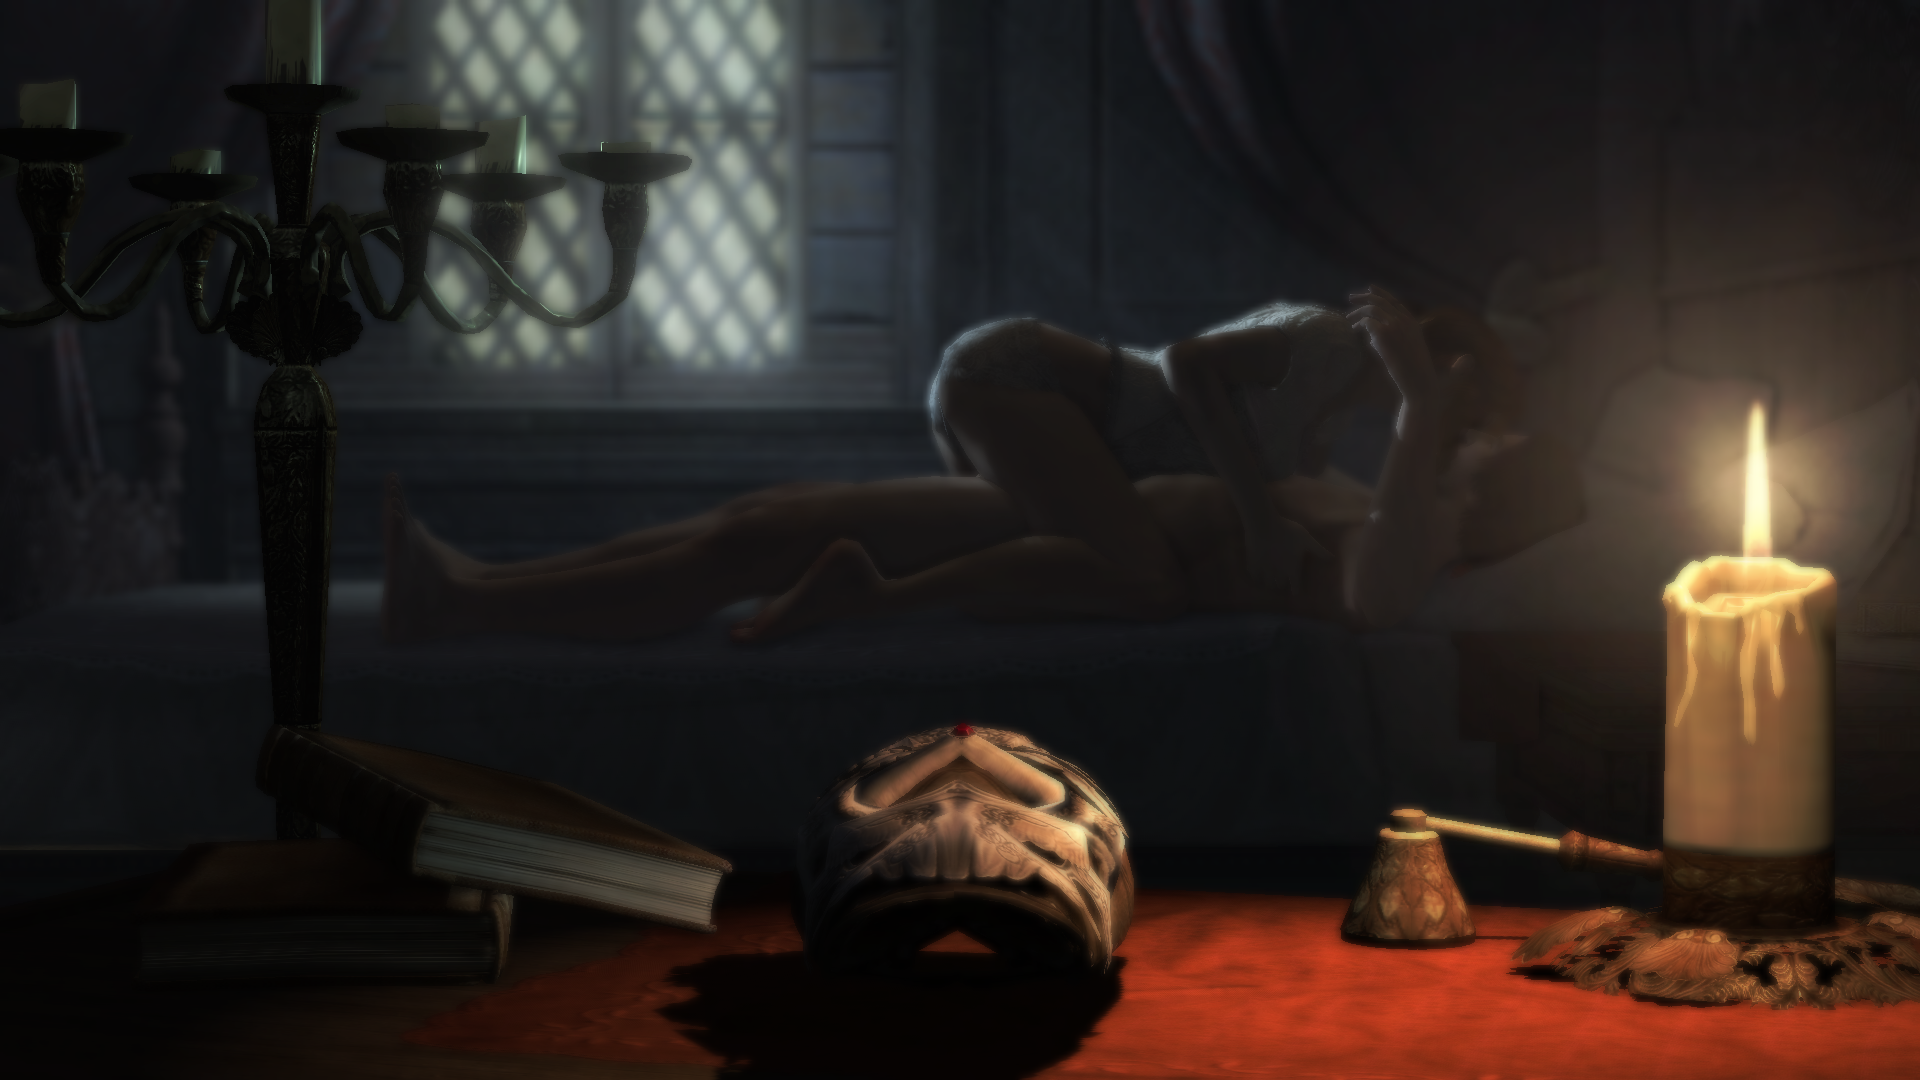 Assassin's creed brotherhood nude girl naked virgin